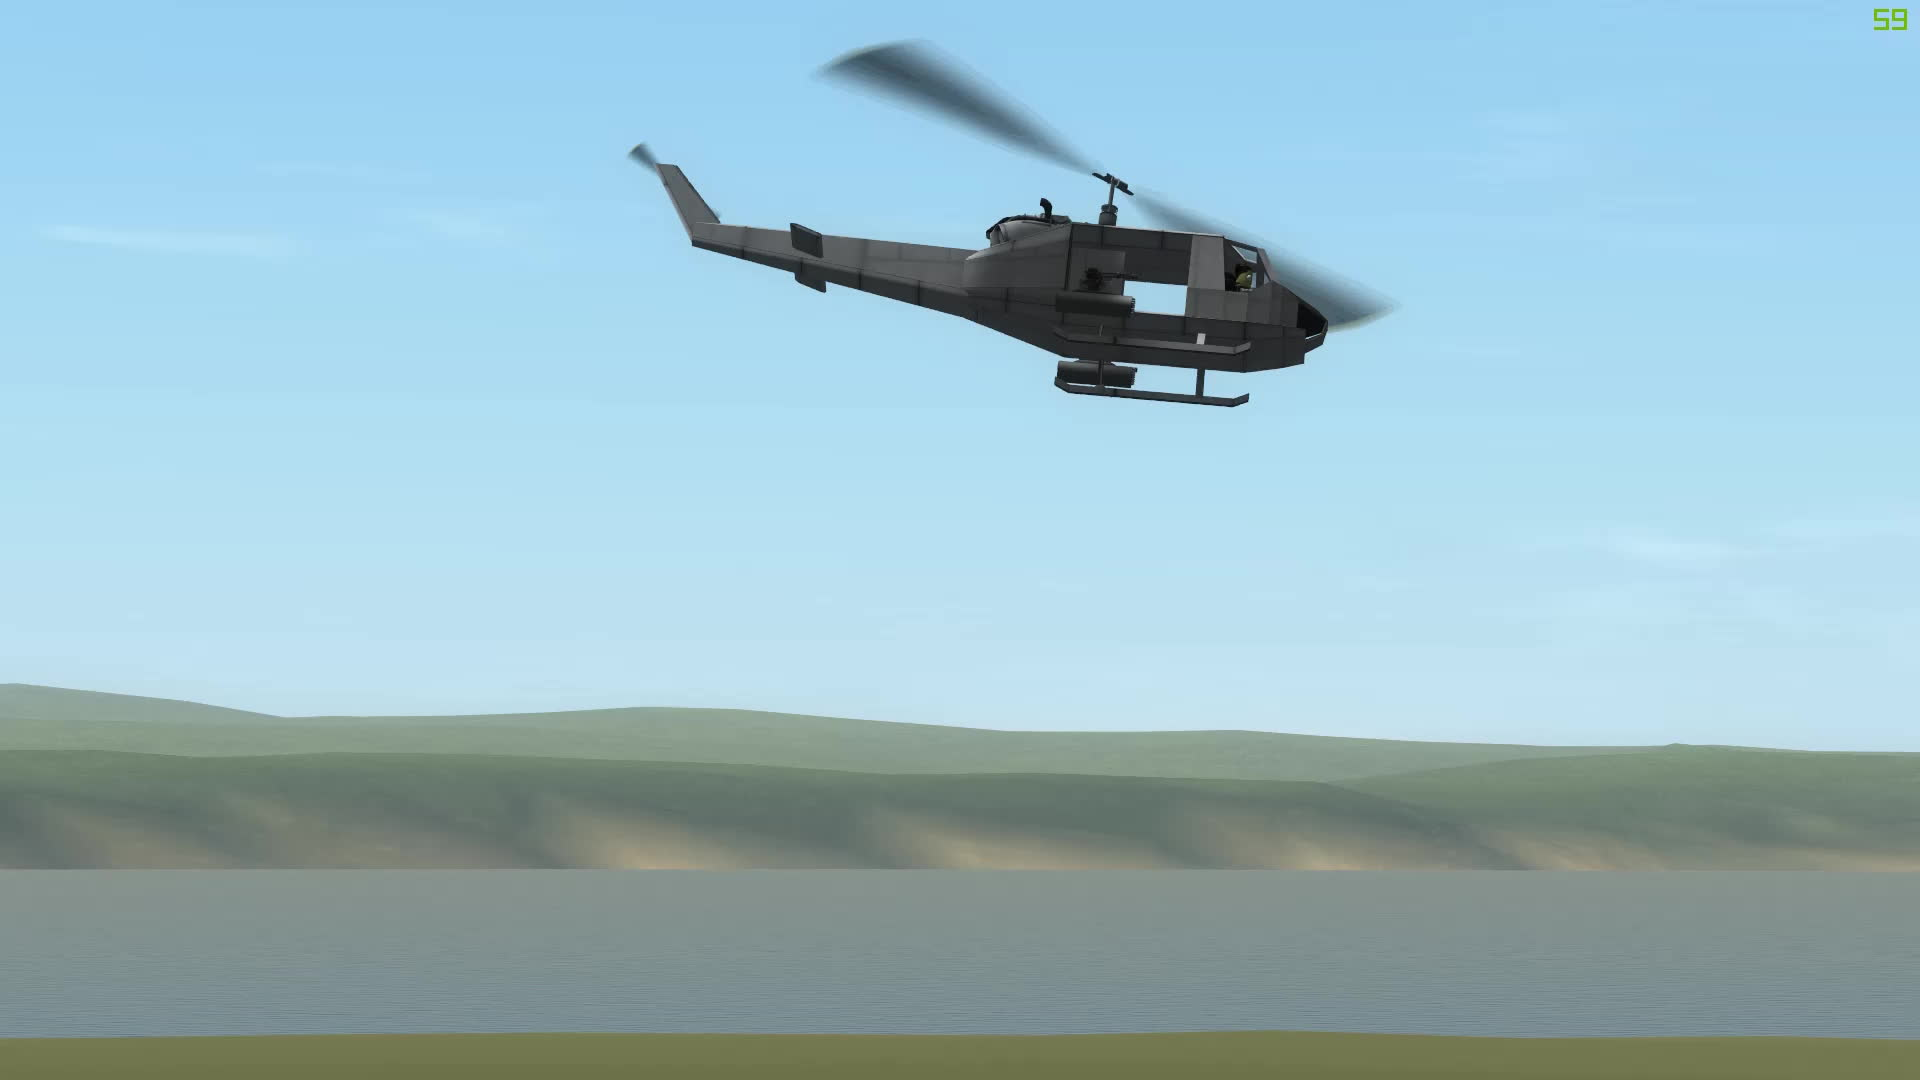 kerbalspaceprogram, ksp, tfw you first fly helicopters GIFs